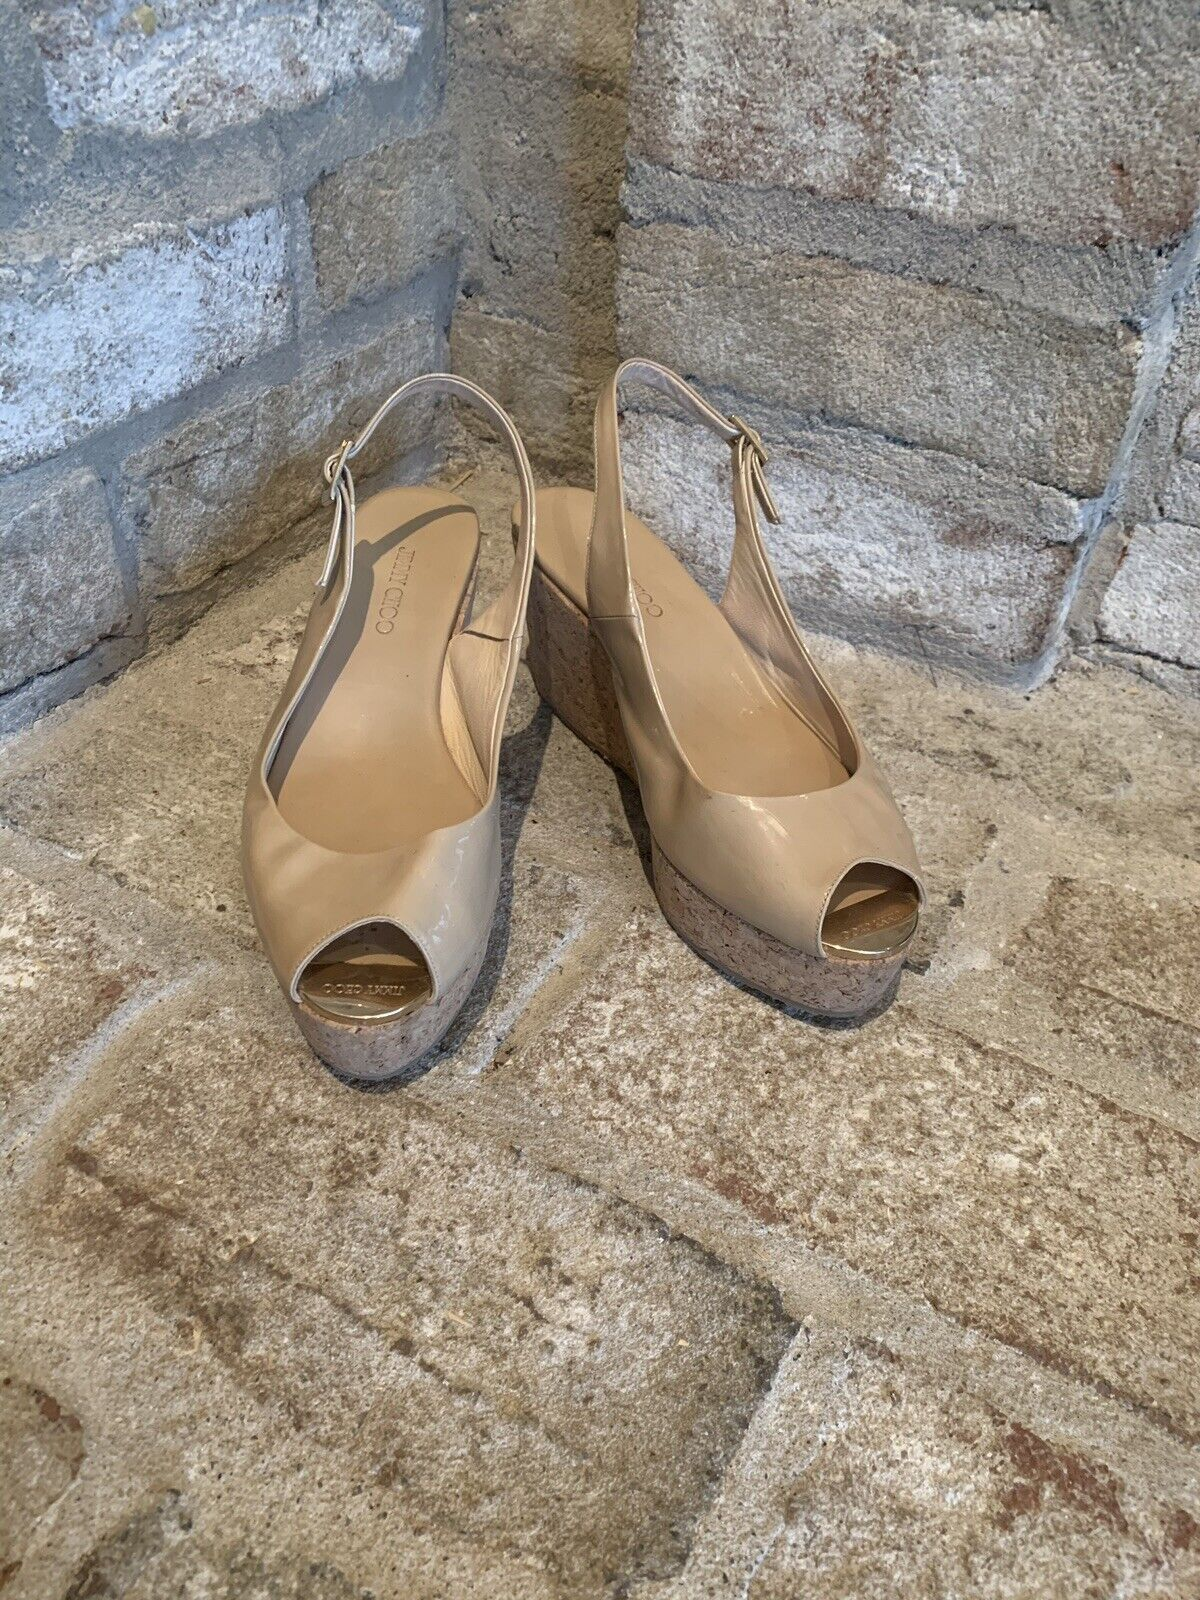 Jimmy Choo Nude Patent Leather Cork Wedge Sandal Size 37.5